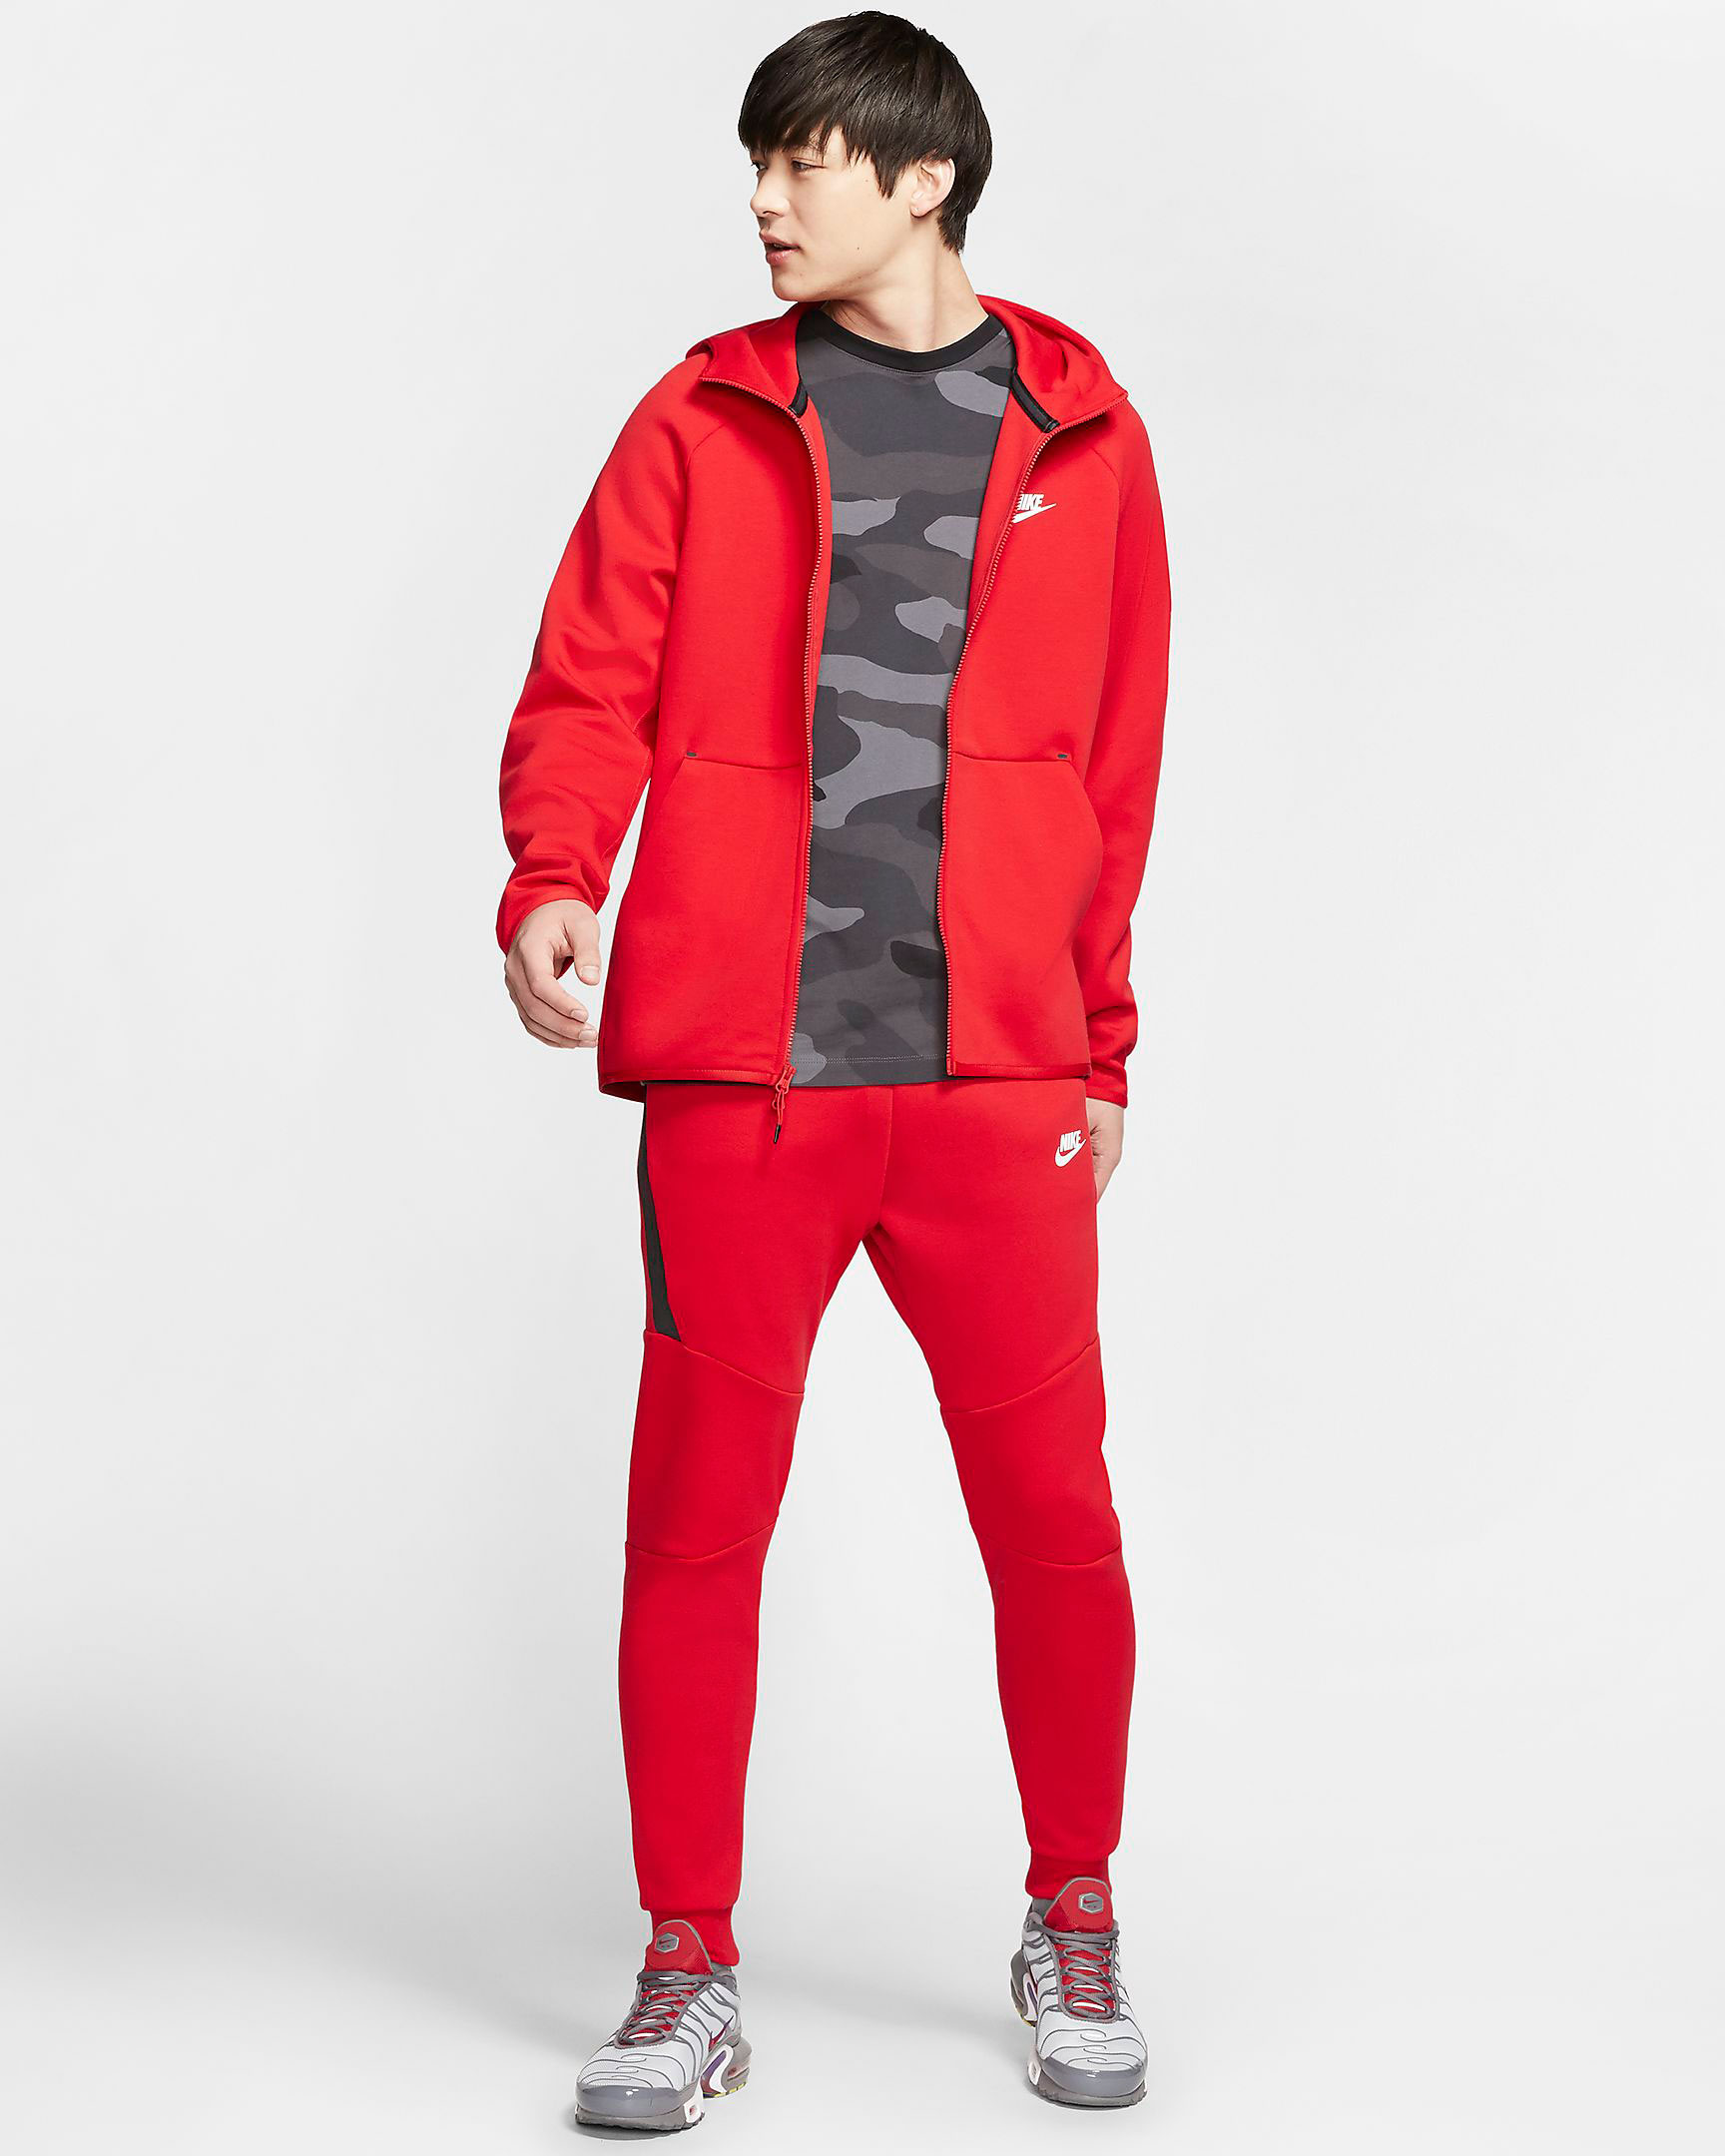 nike-tech-fleece-red-hoodie-jogger-pants